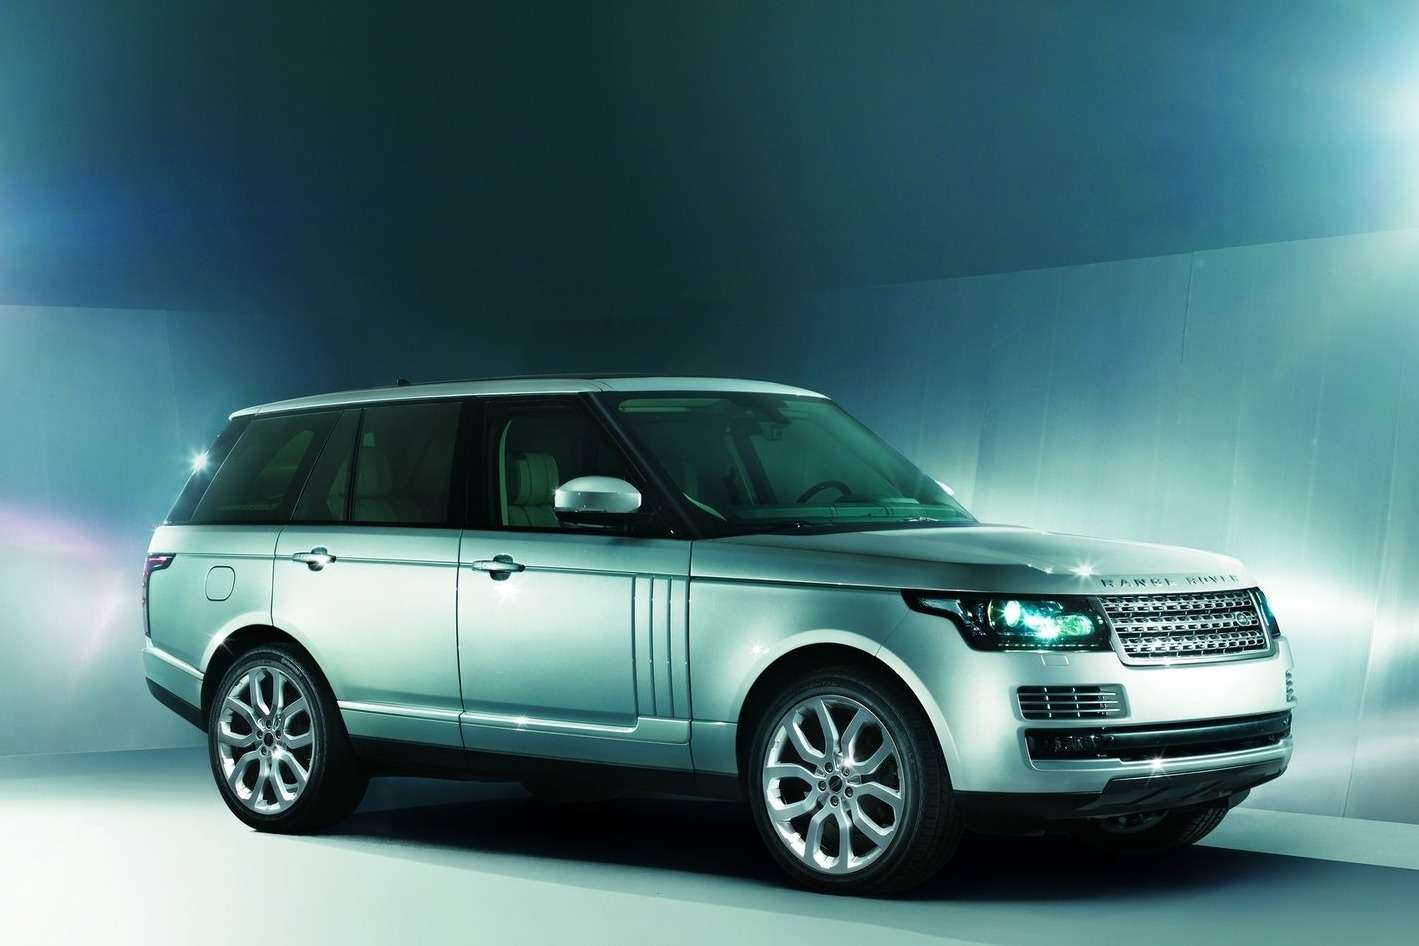 Land Rover Range Rover side-front view_no_copyright